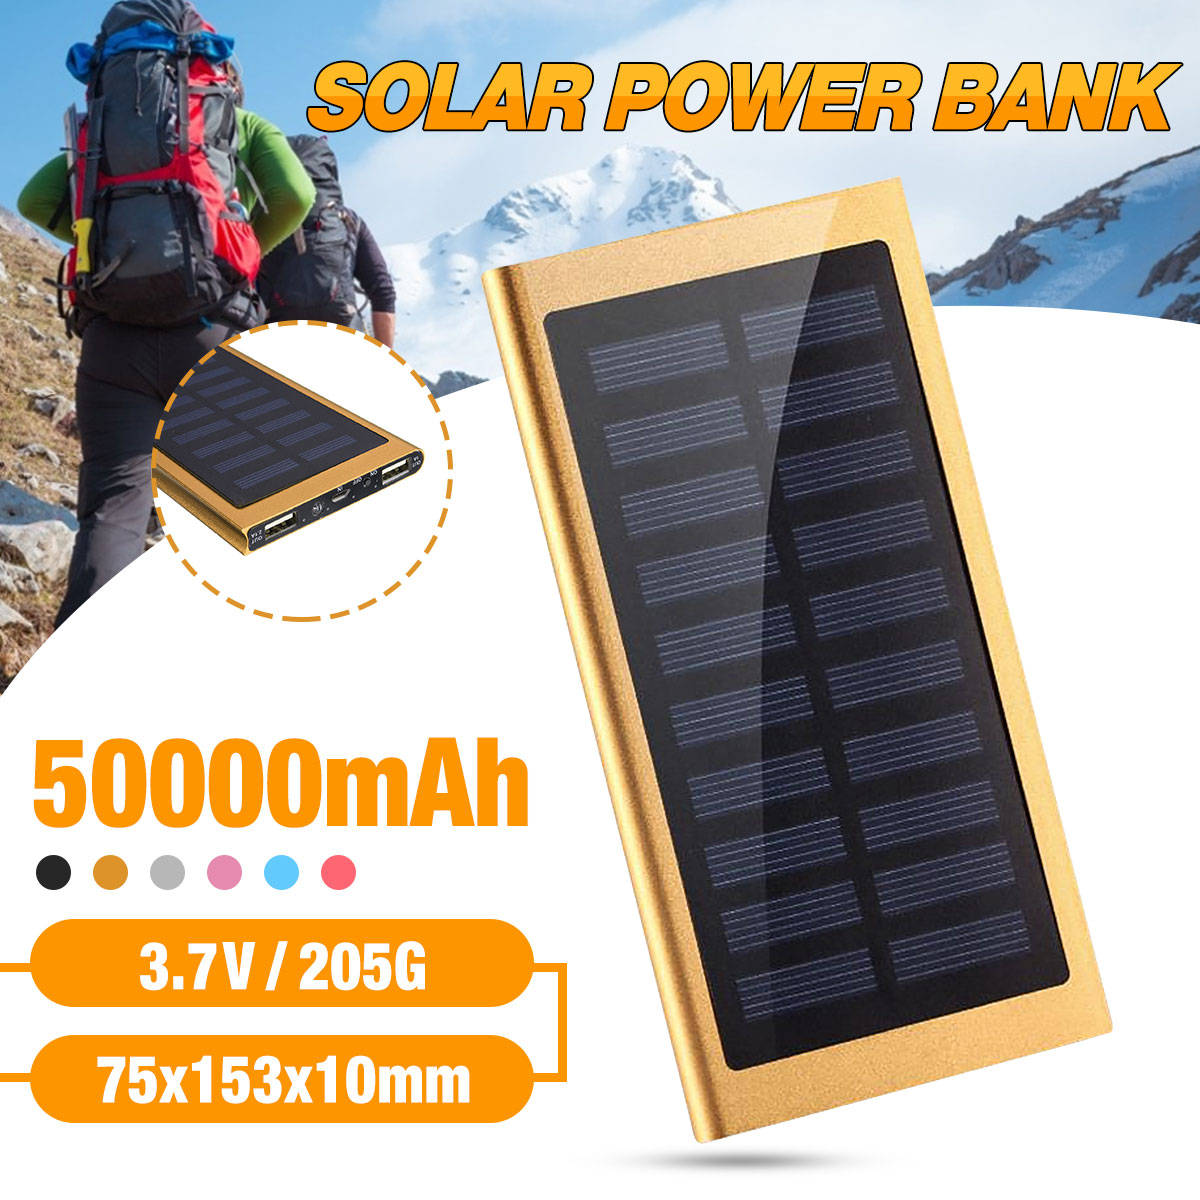 Hot Solar Power Bank 50000mah External Battery 2 USB LED Powerbank Portable Mobile Phone Solar Charger For Xiaomi Huawei Vivo